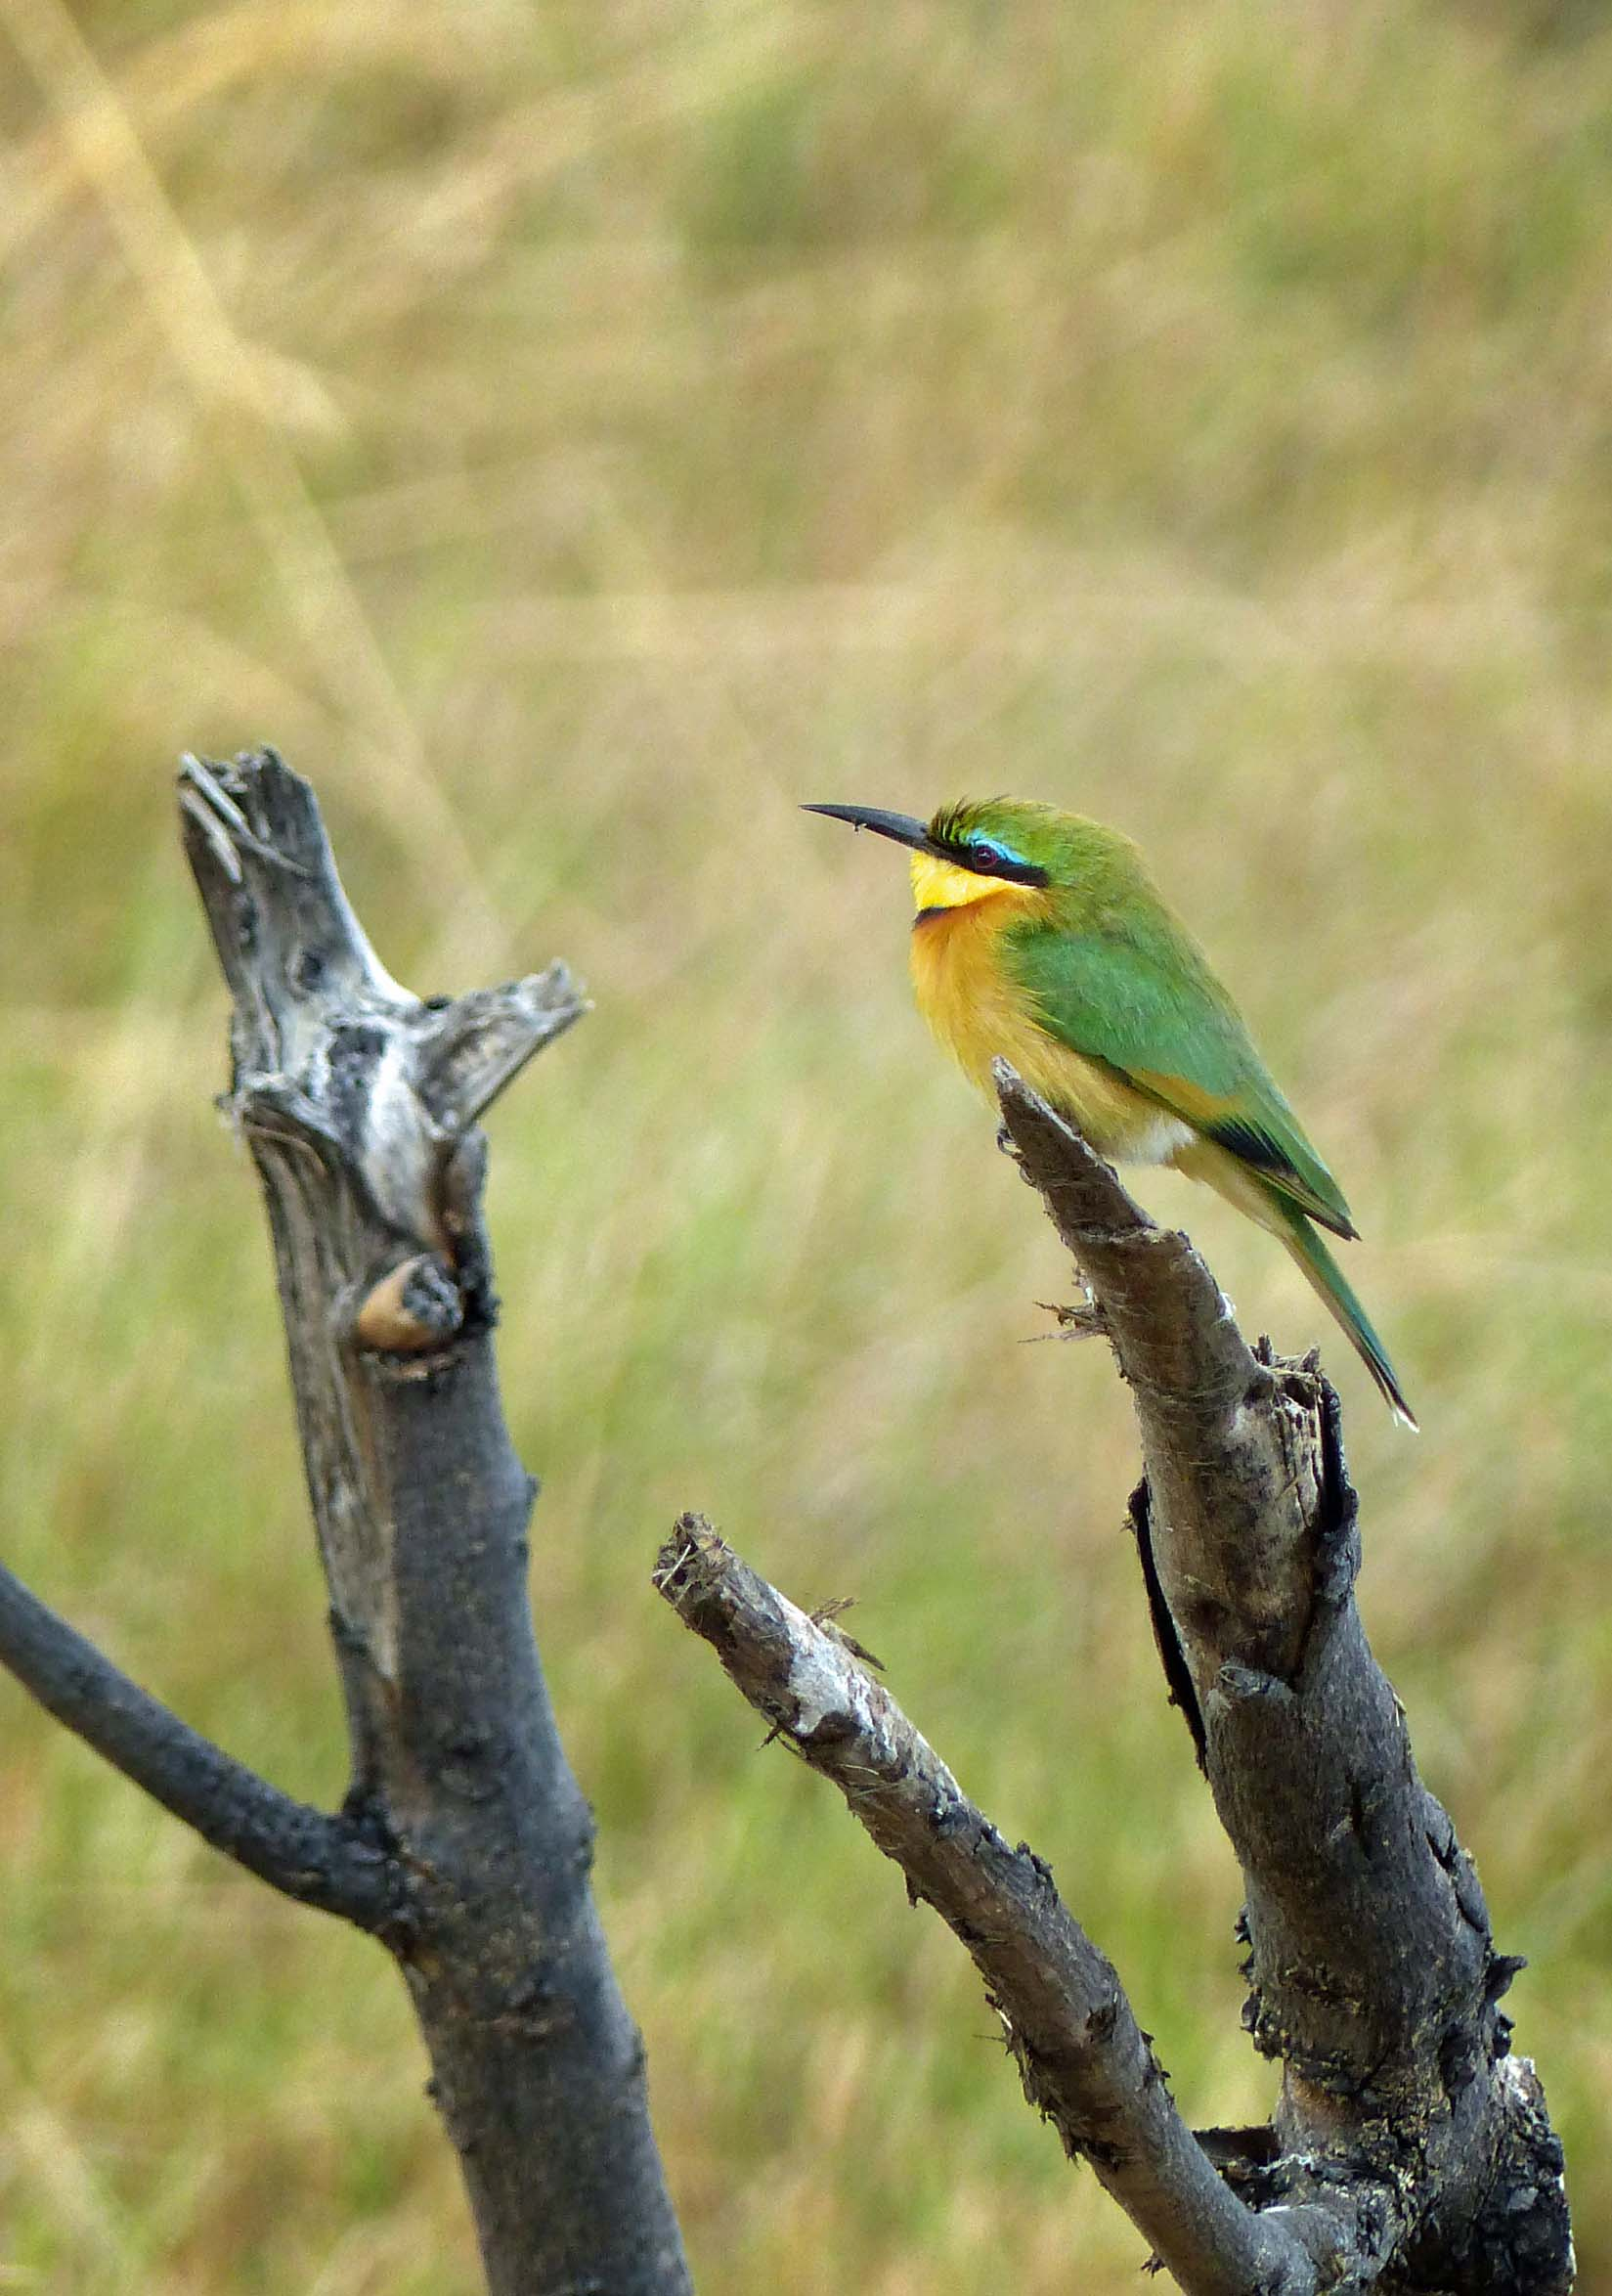 Bright green and yellow bird on a dead tree